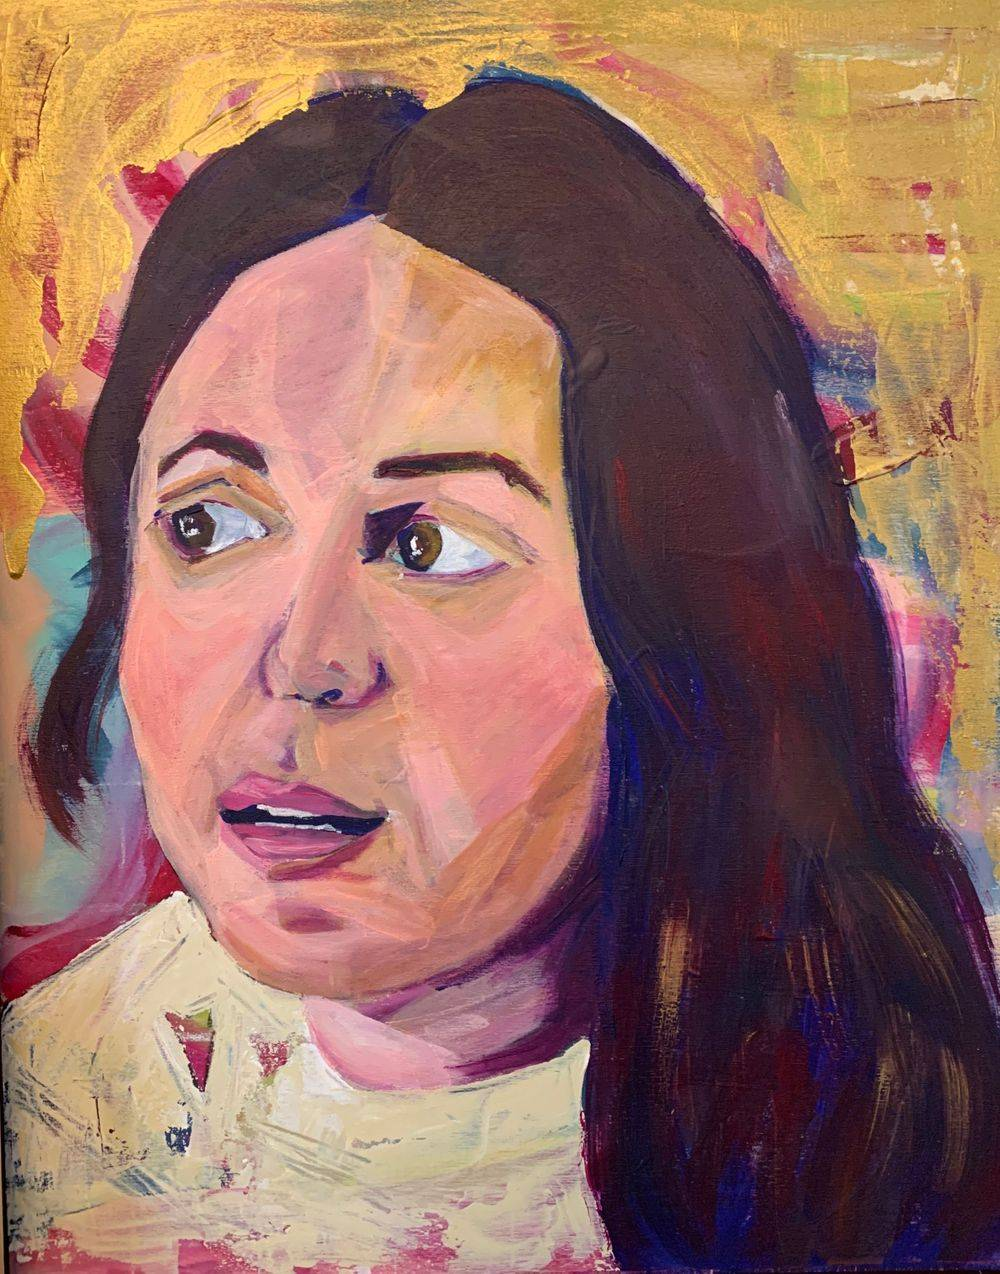 Colorful portrait of woman abstract expressionist painting